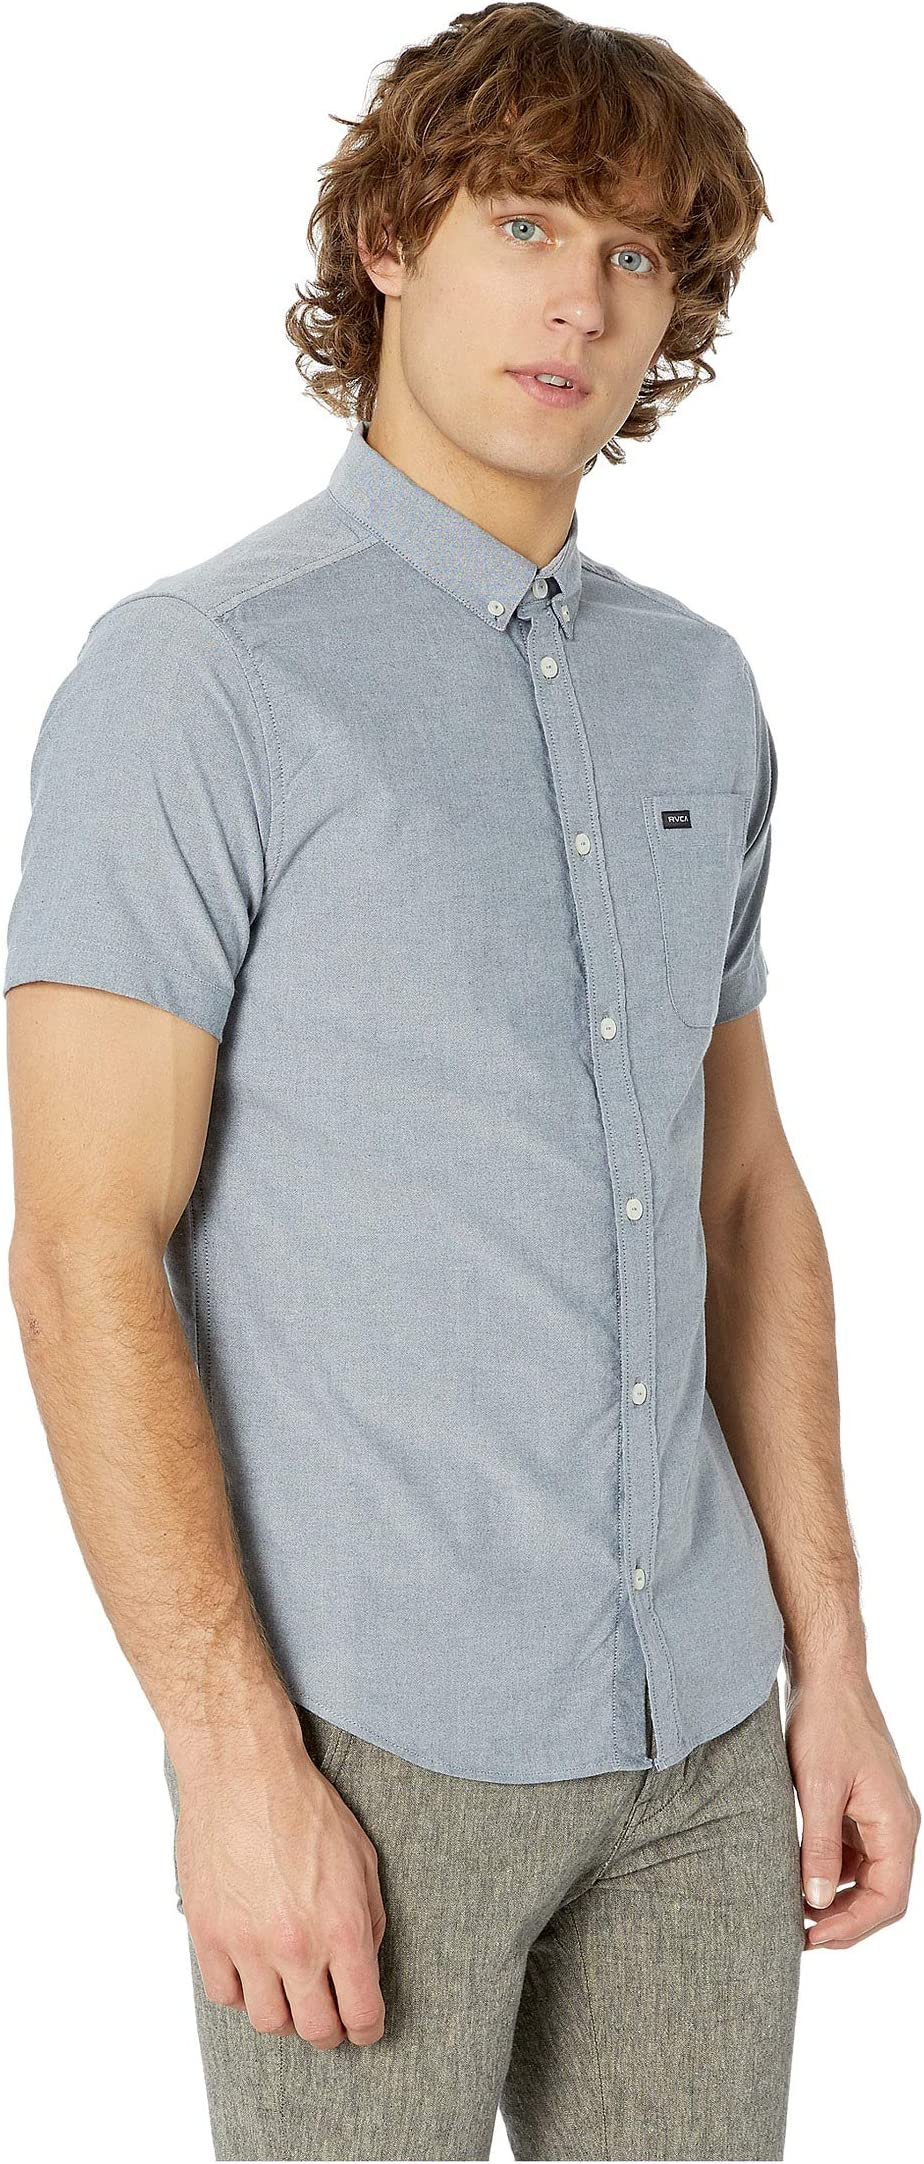 RVCA That'll Do Stretch Short Sleeve Woven g7lT3